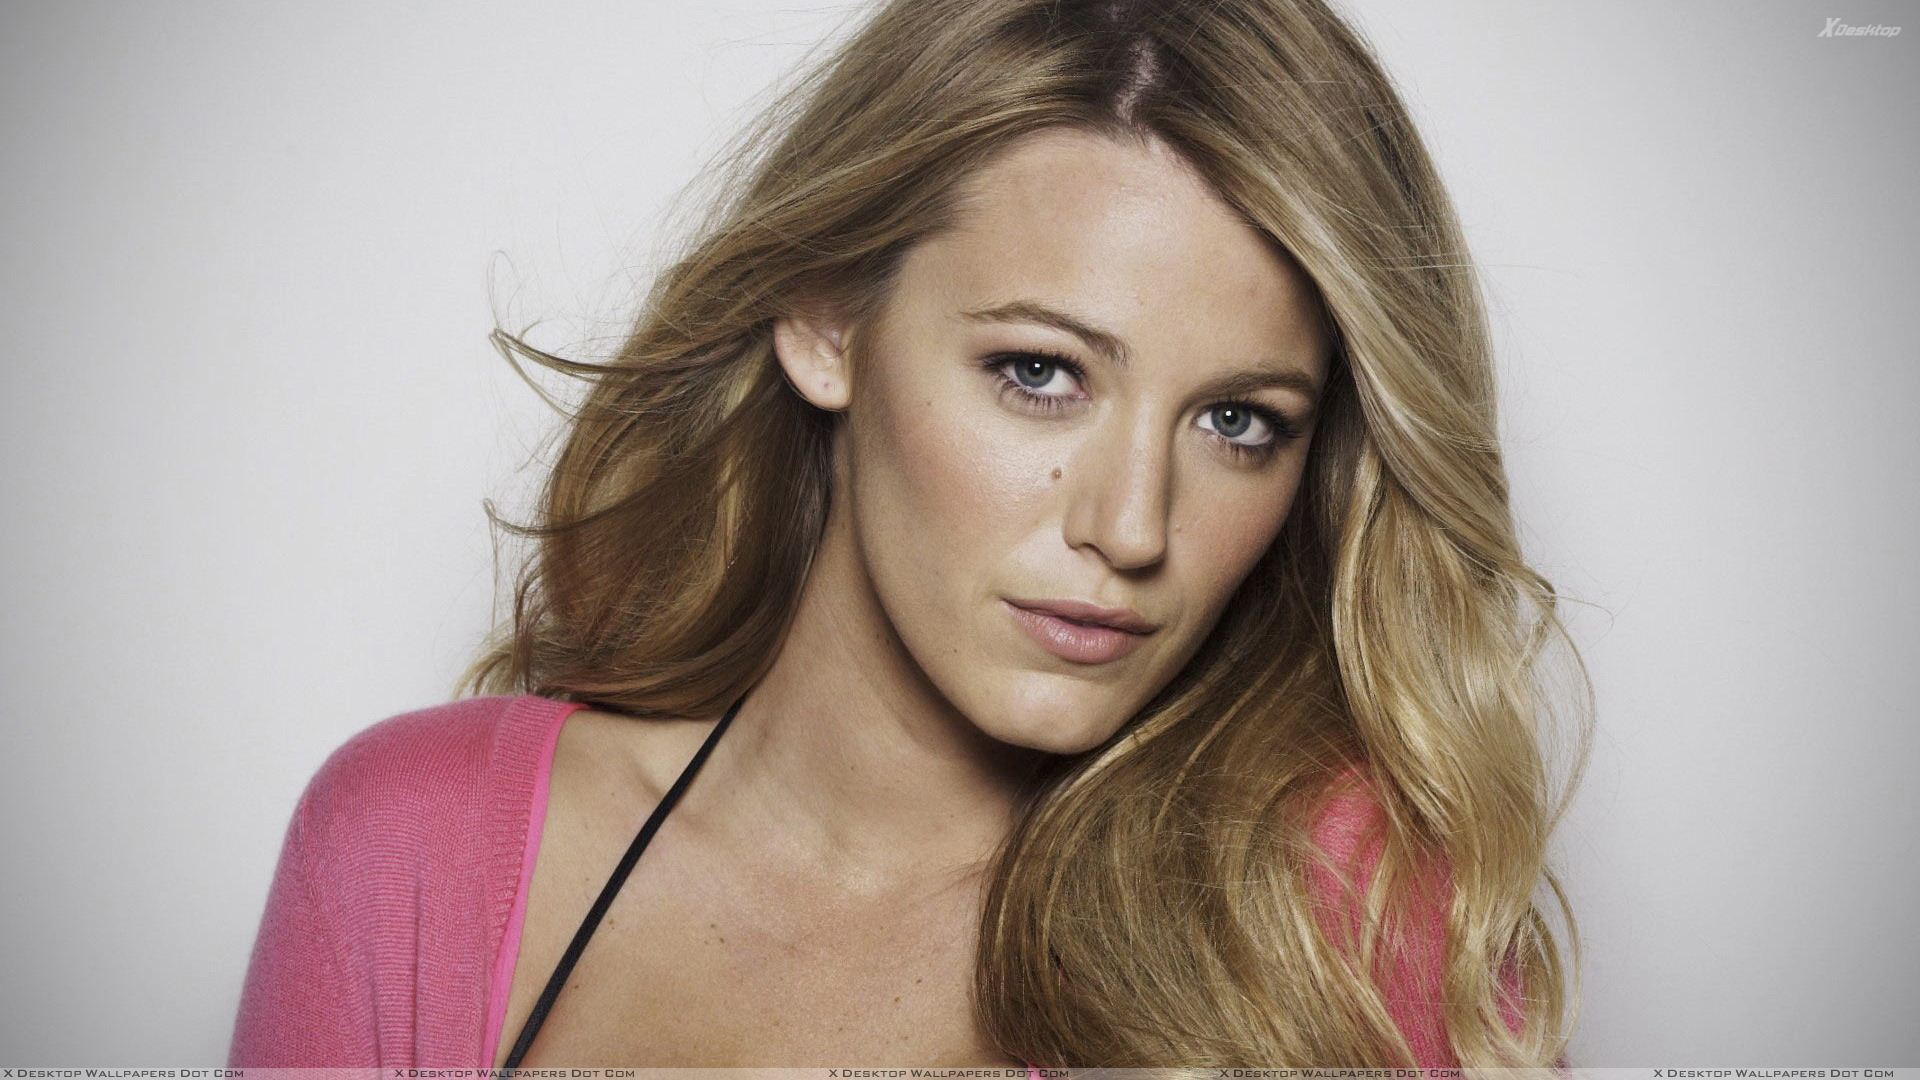 blake lively wallpapers, photos & images in hd